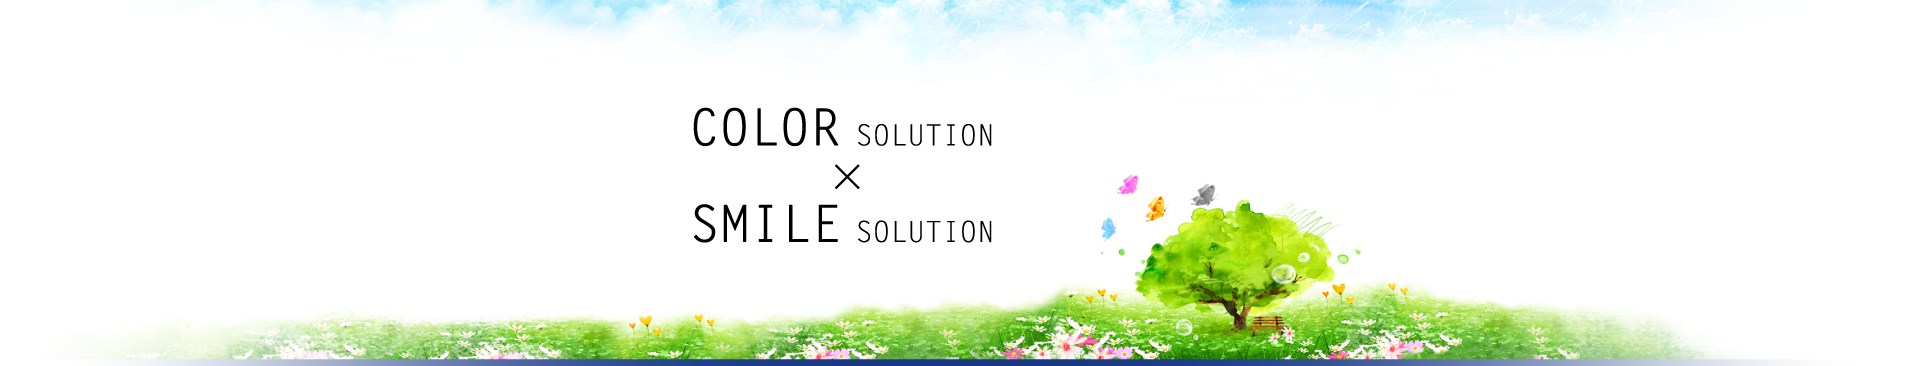 COLOR SOLUTION X SMILE SOLUTION